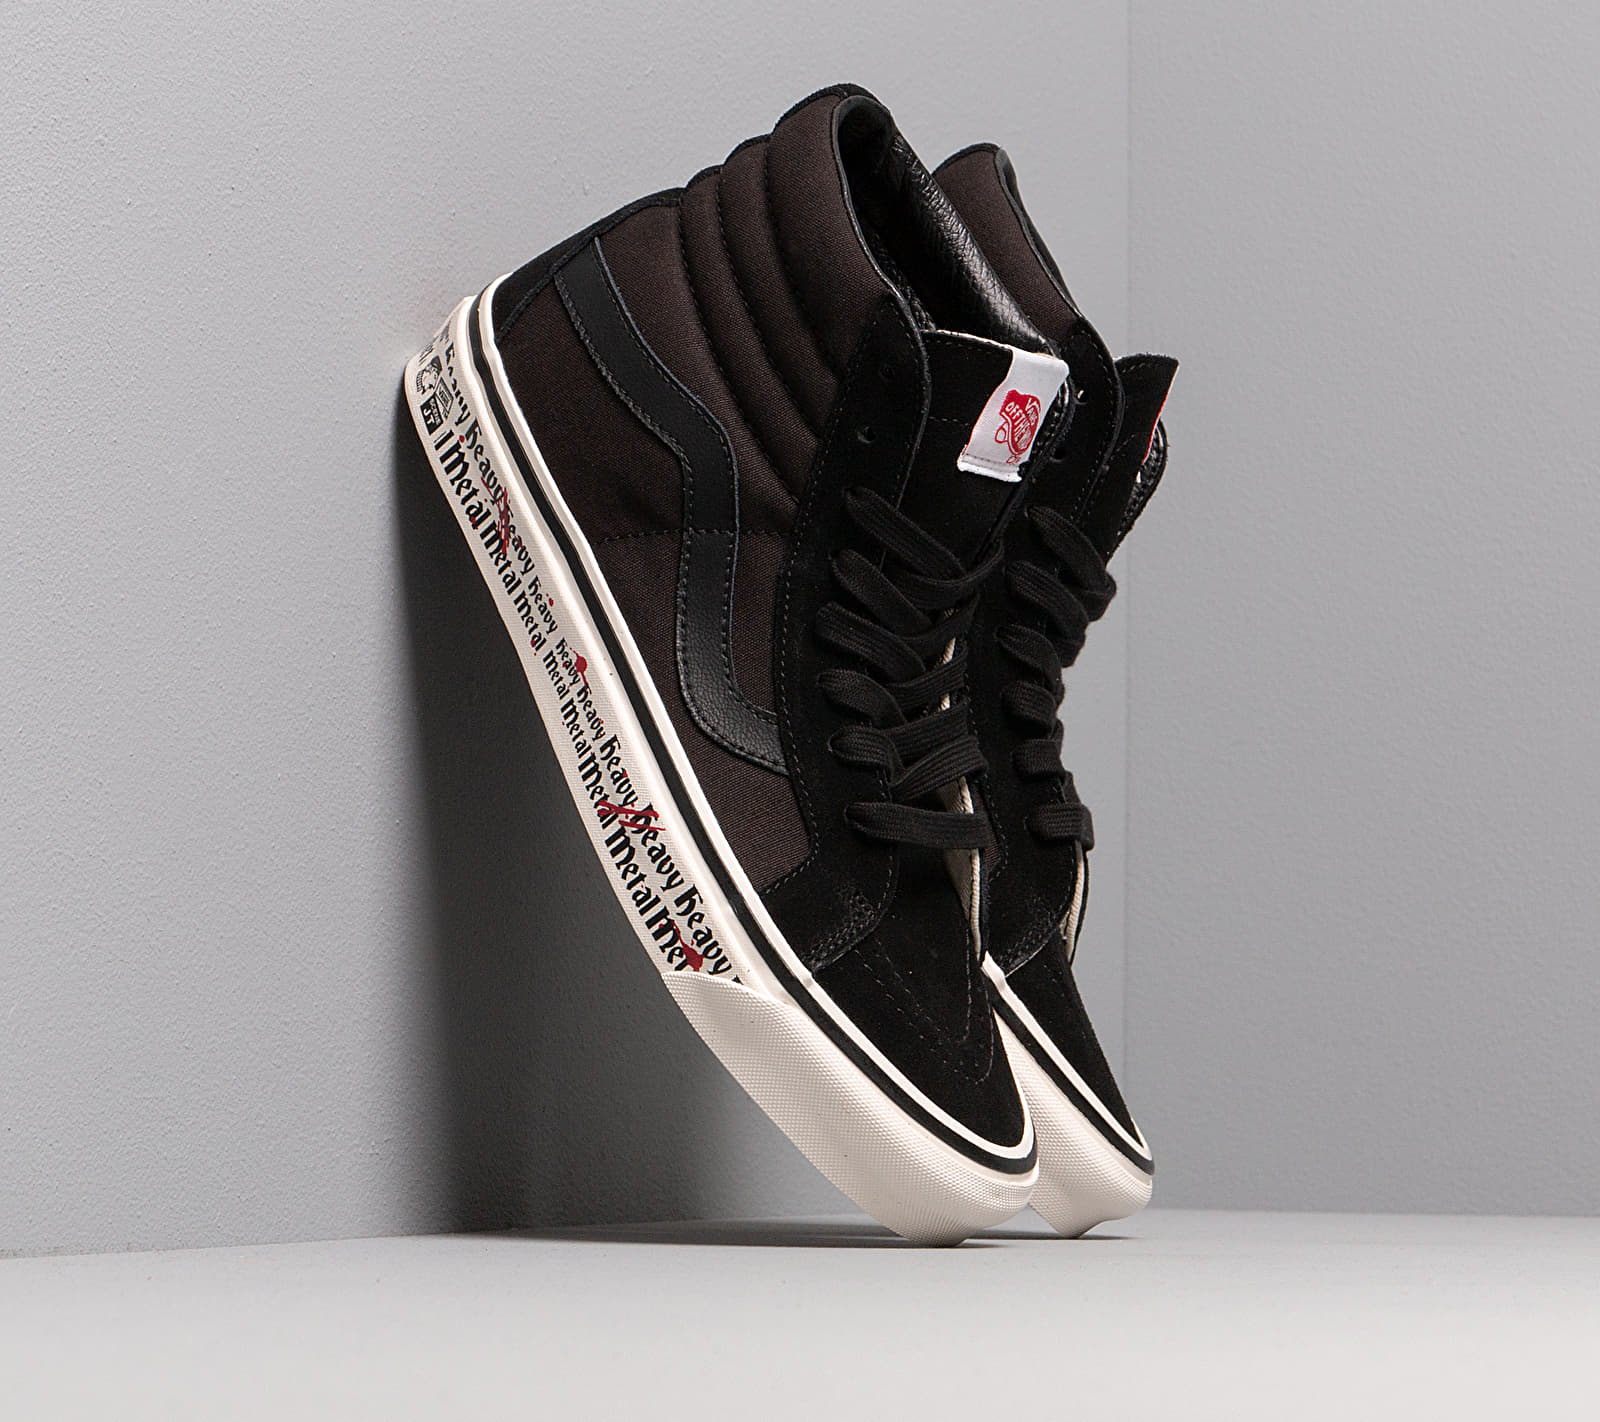 Vans Sk8-Hi 38 Dx (Anaheim Factory) Heavy Metal Tape/ Og Black VN0A38GFTIO1